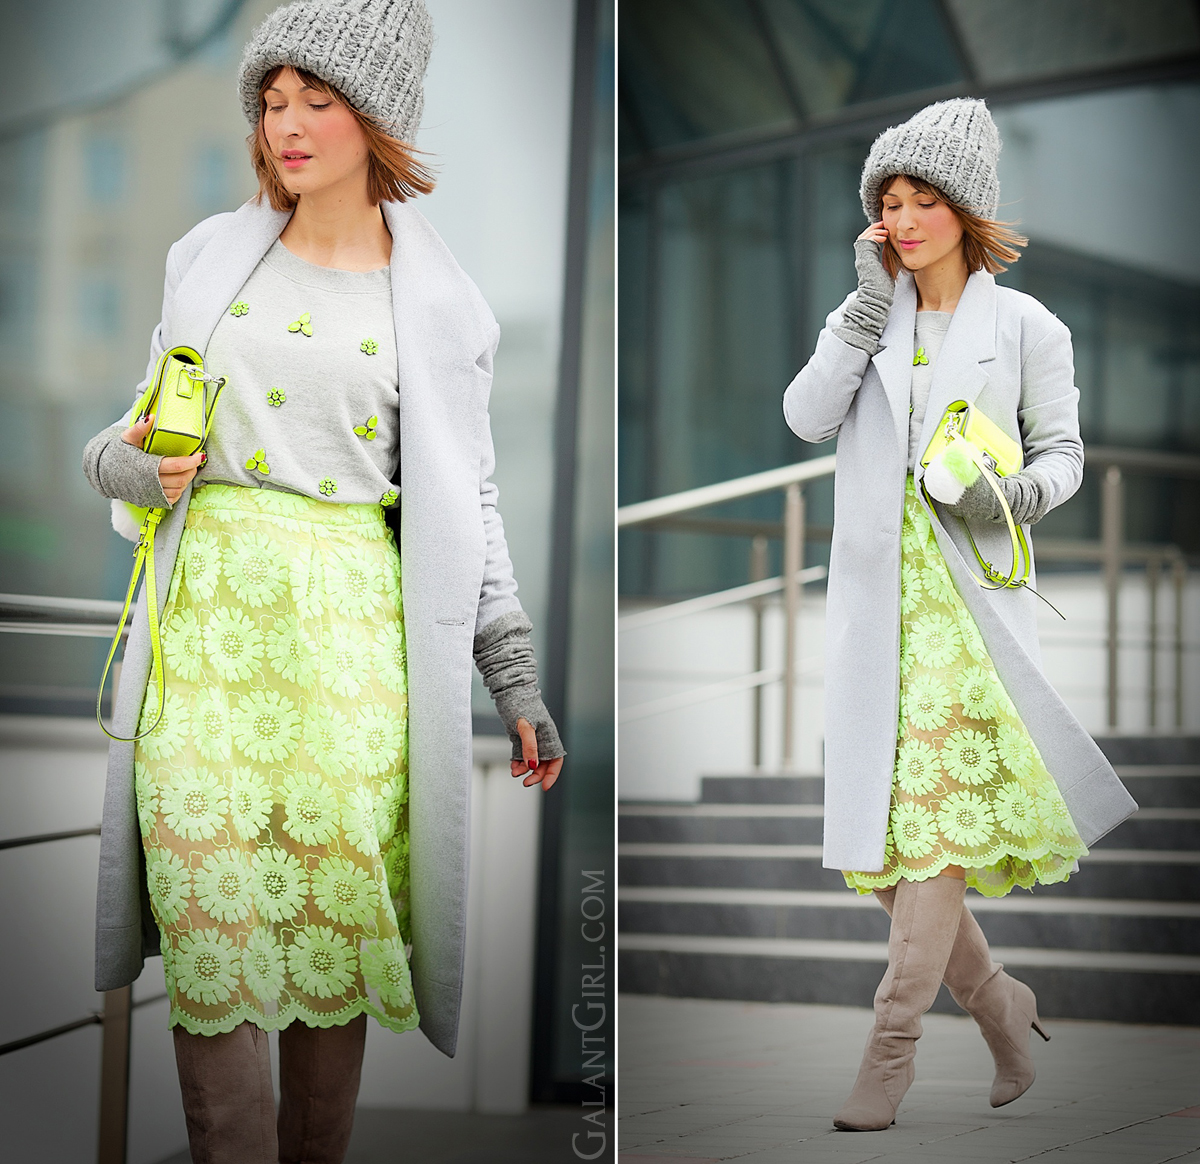 neon lace skirt, galant girl, grey outfit, winter outfit,